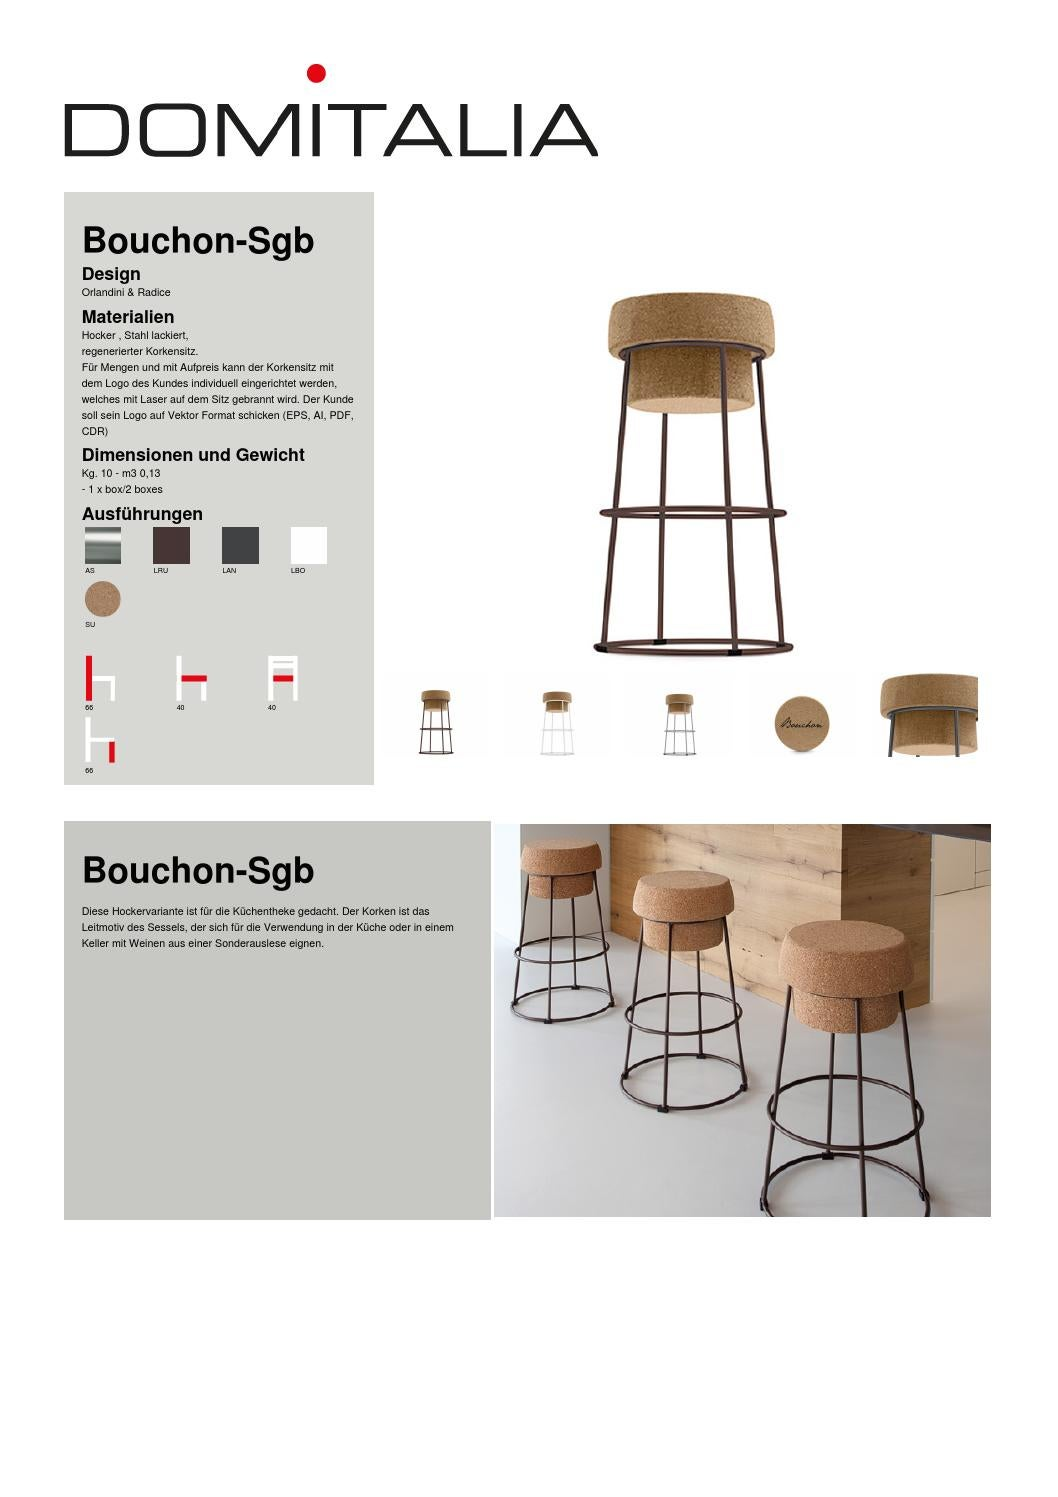 Hocker Küchentheke Bouchon Sgb By Toni Mulas - Issuu